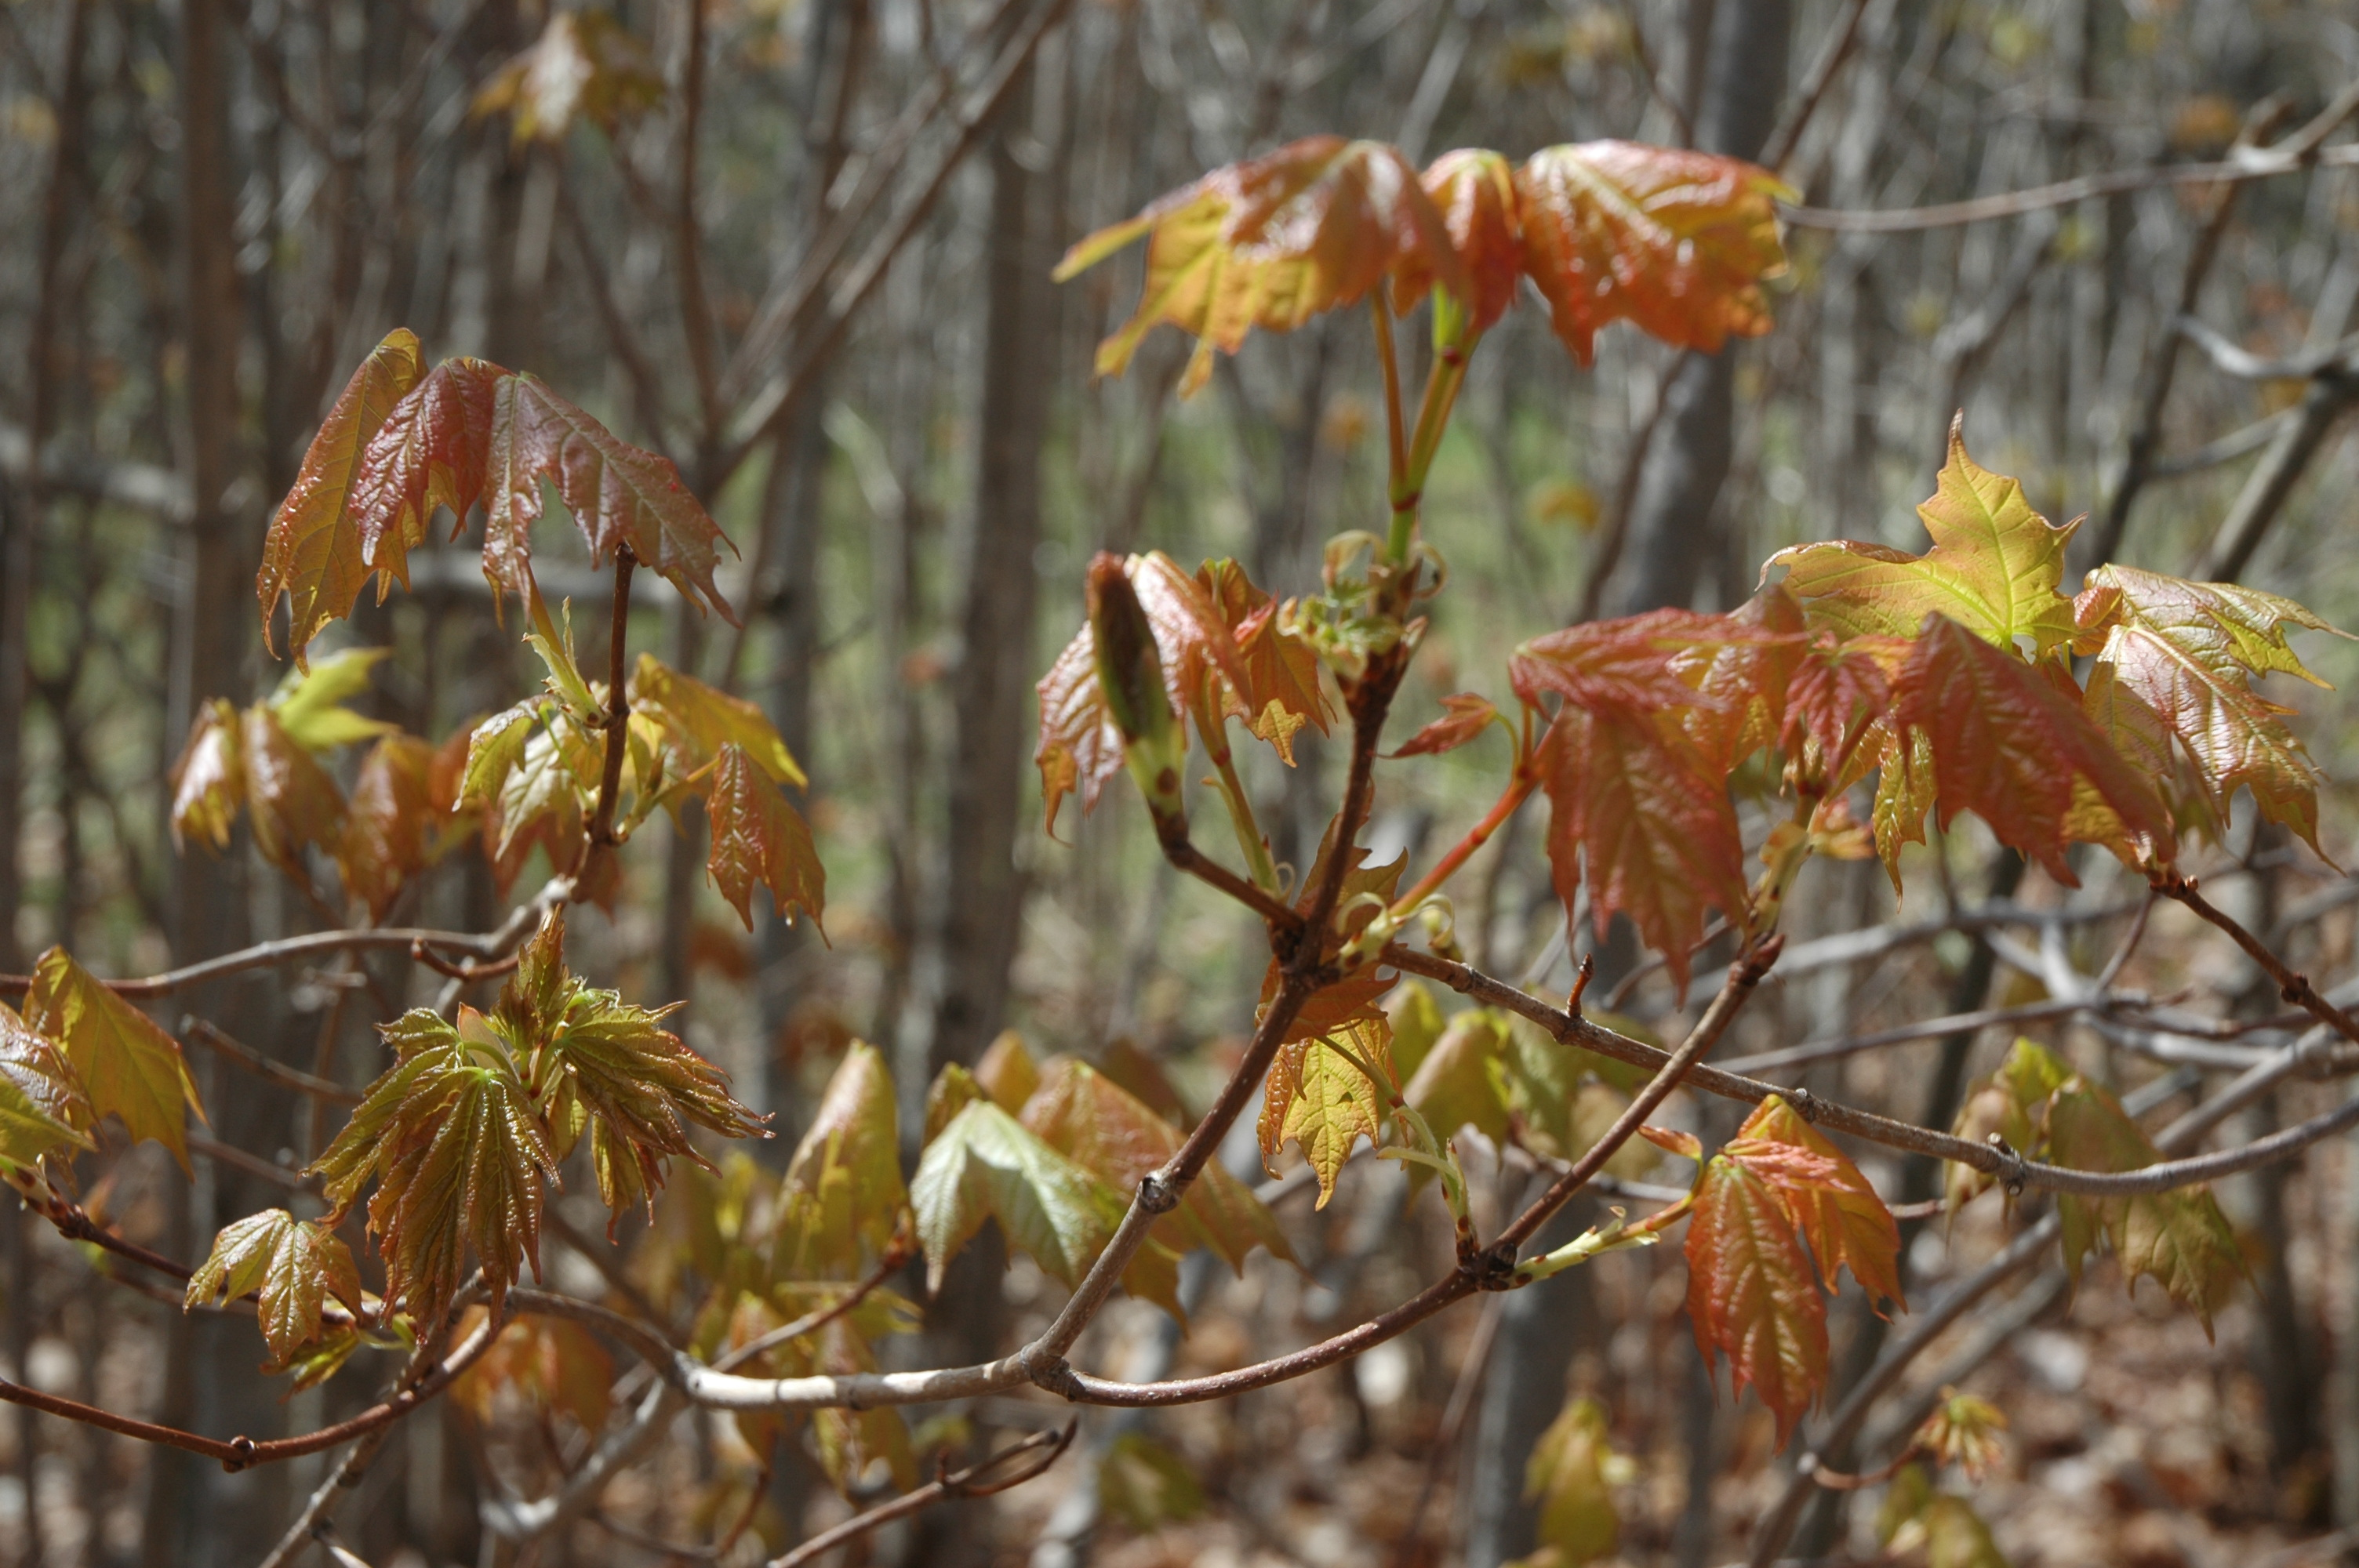 Acer saccharum'1